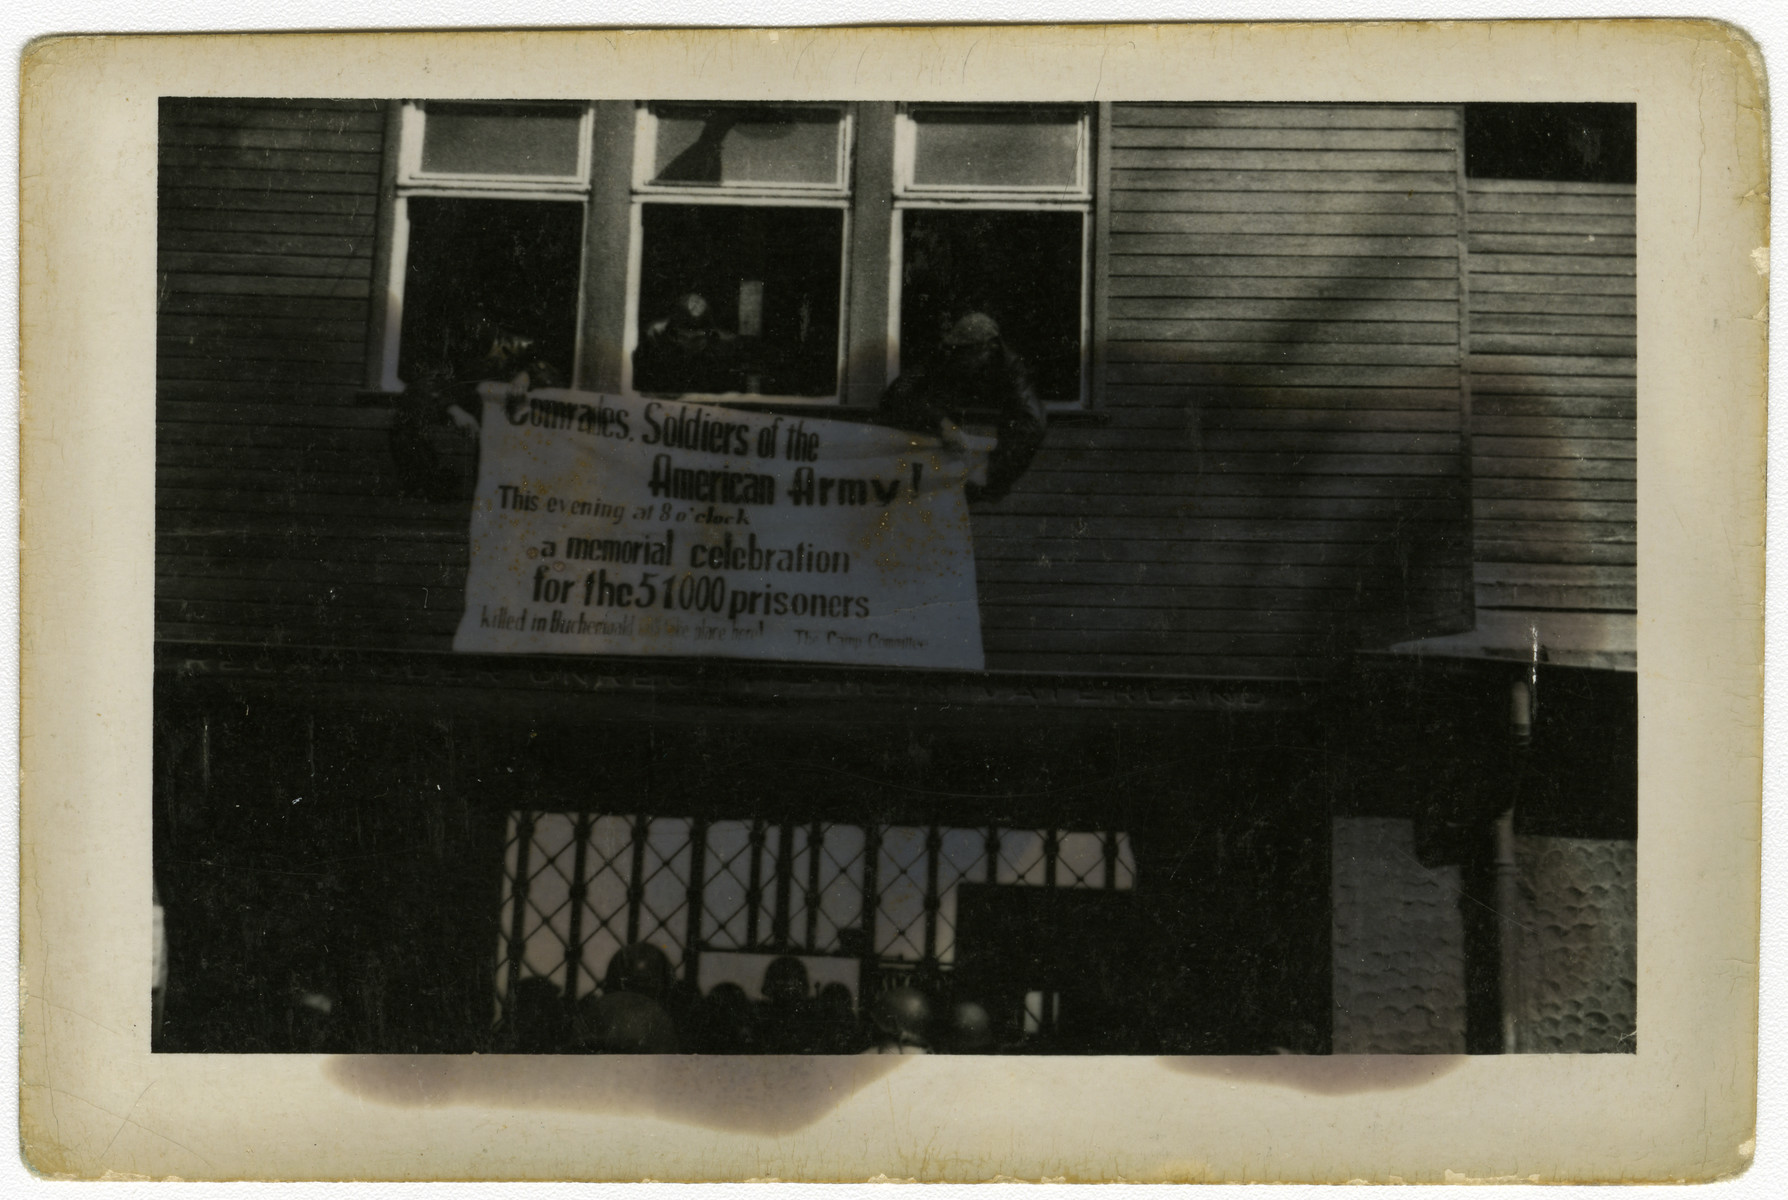 Survivors hang a banner outside the main gate of Buchenwald inviting American soldiers to attend a memorial celebration [sic] for the 51,000 prisoners killed in the Buchenwald concentration camp.